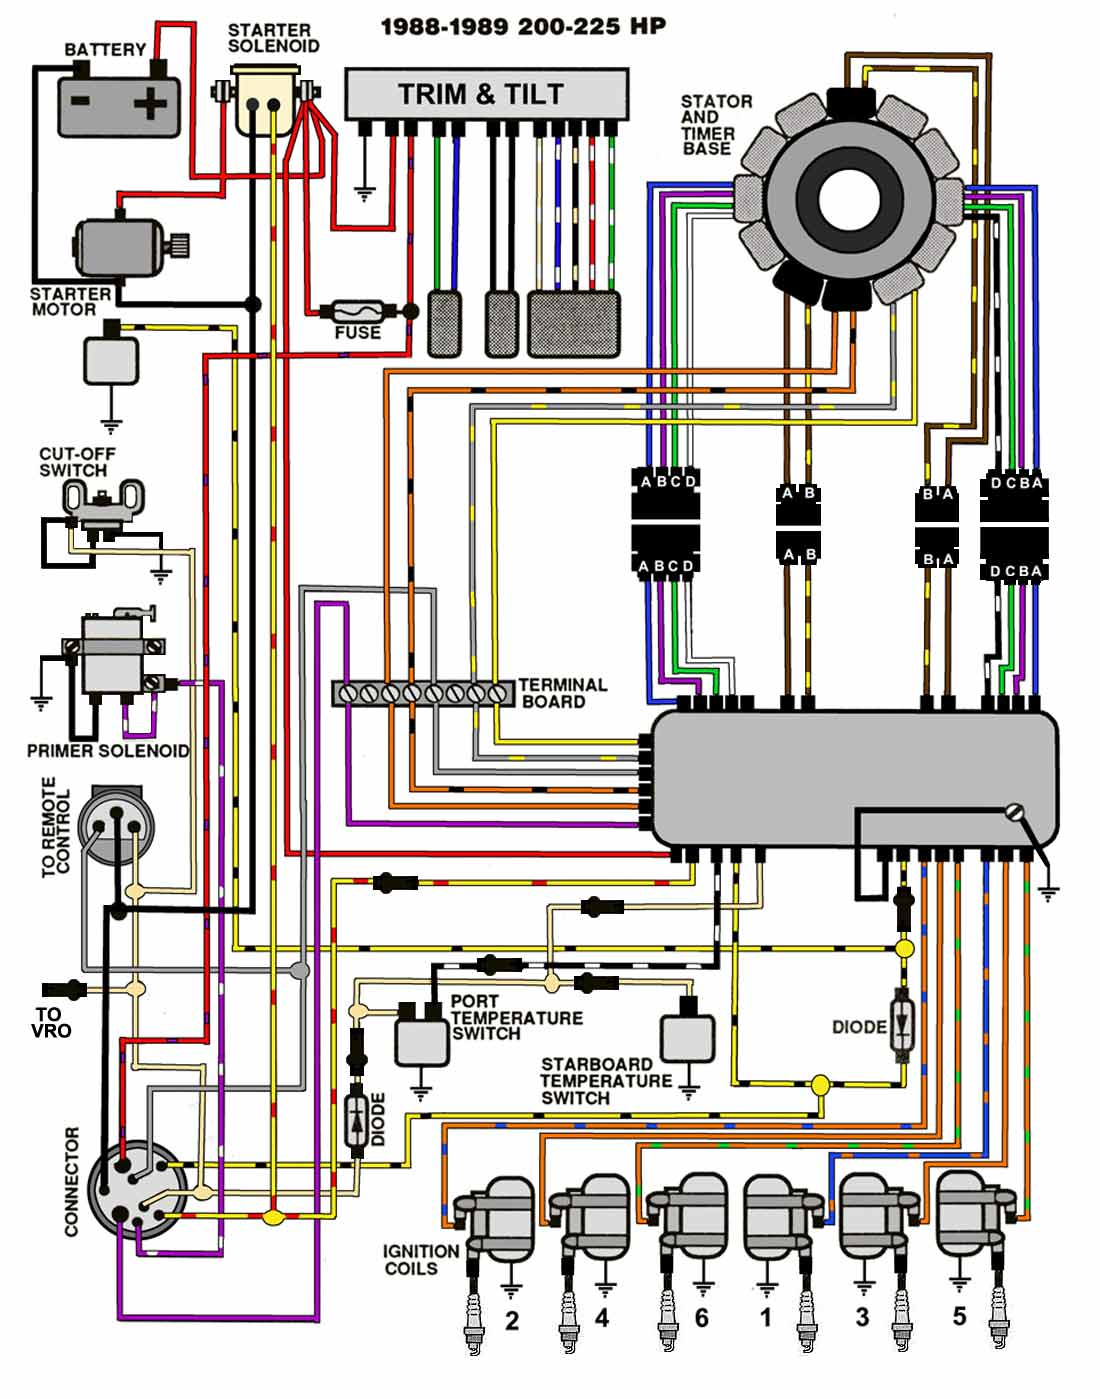 hight resolution of evinrude johnson outboard wiring diagrams mastertech marine rh maxrules com 1981 johnson 50 hp outboard wiring diagram 1981 johnson 50 hp outboard wiring